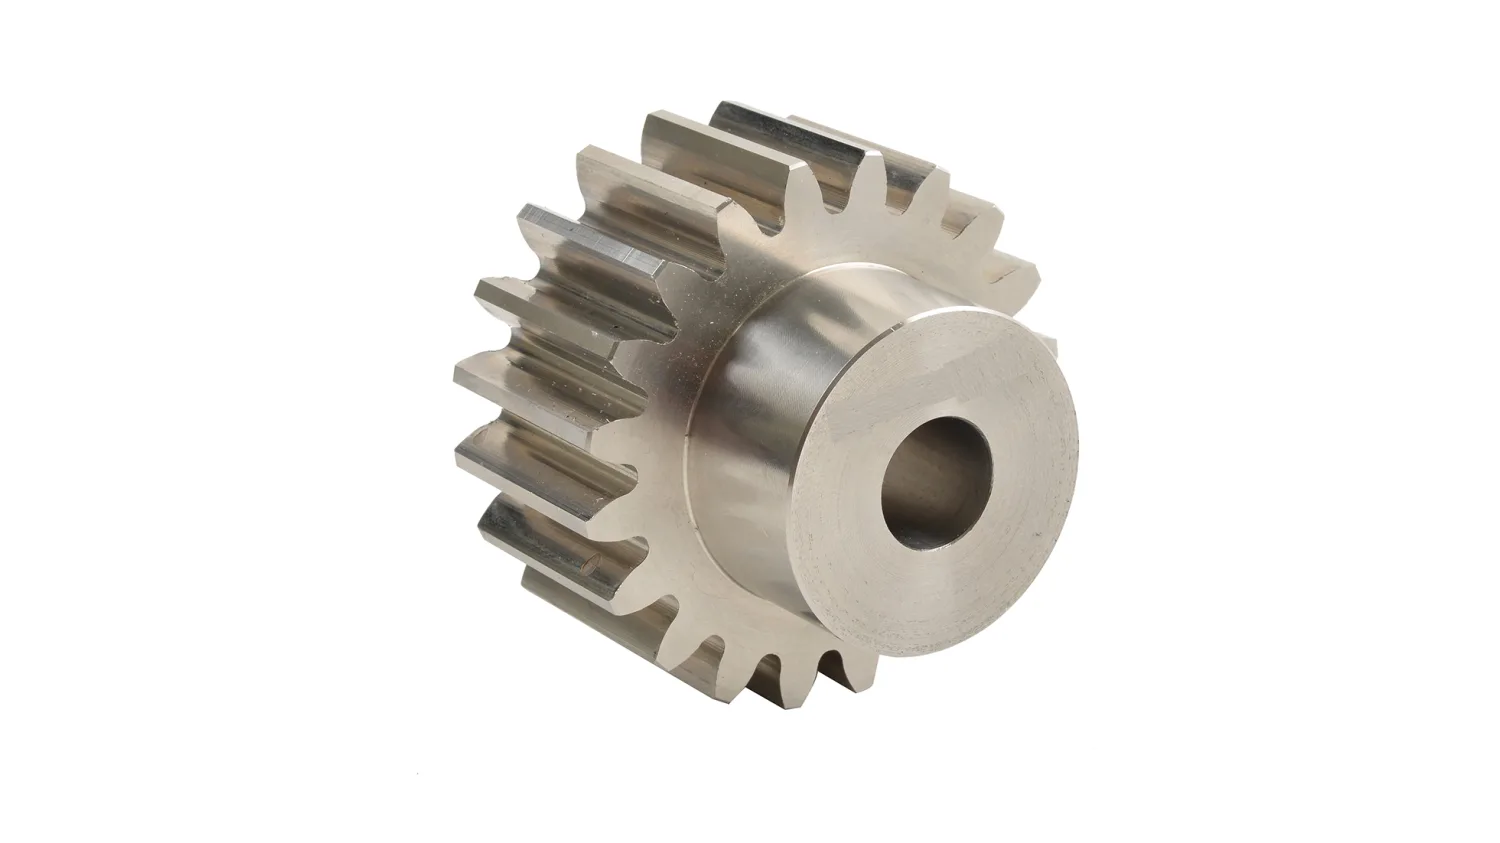 1-5-Mod-x-27-Tooth-Metric-Spur-Gear-in-Steel